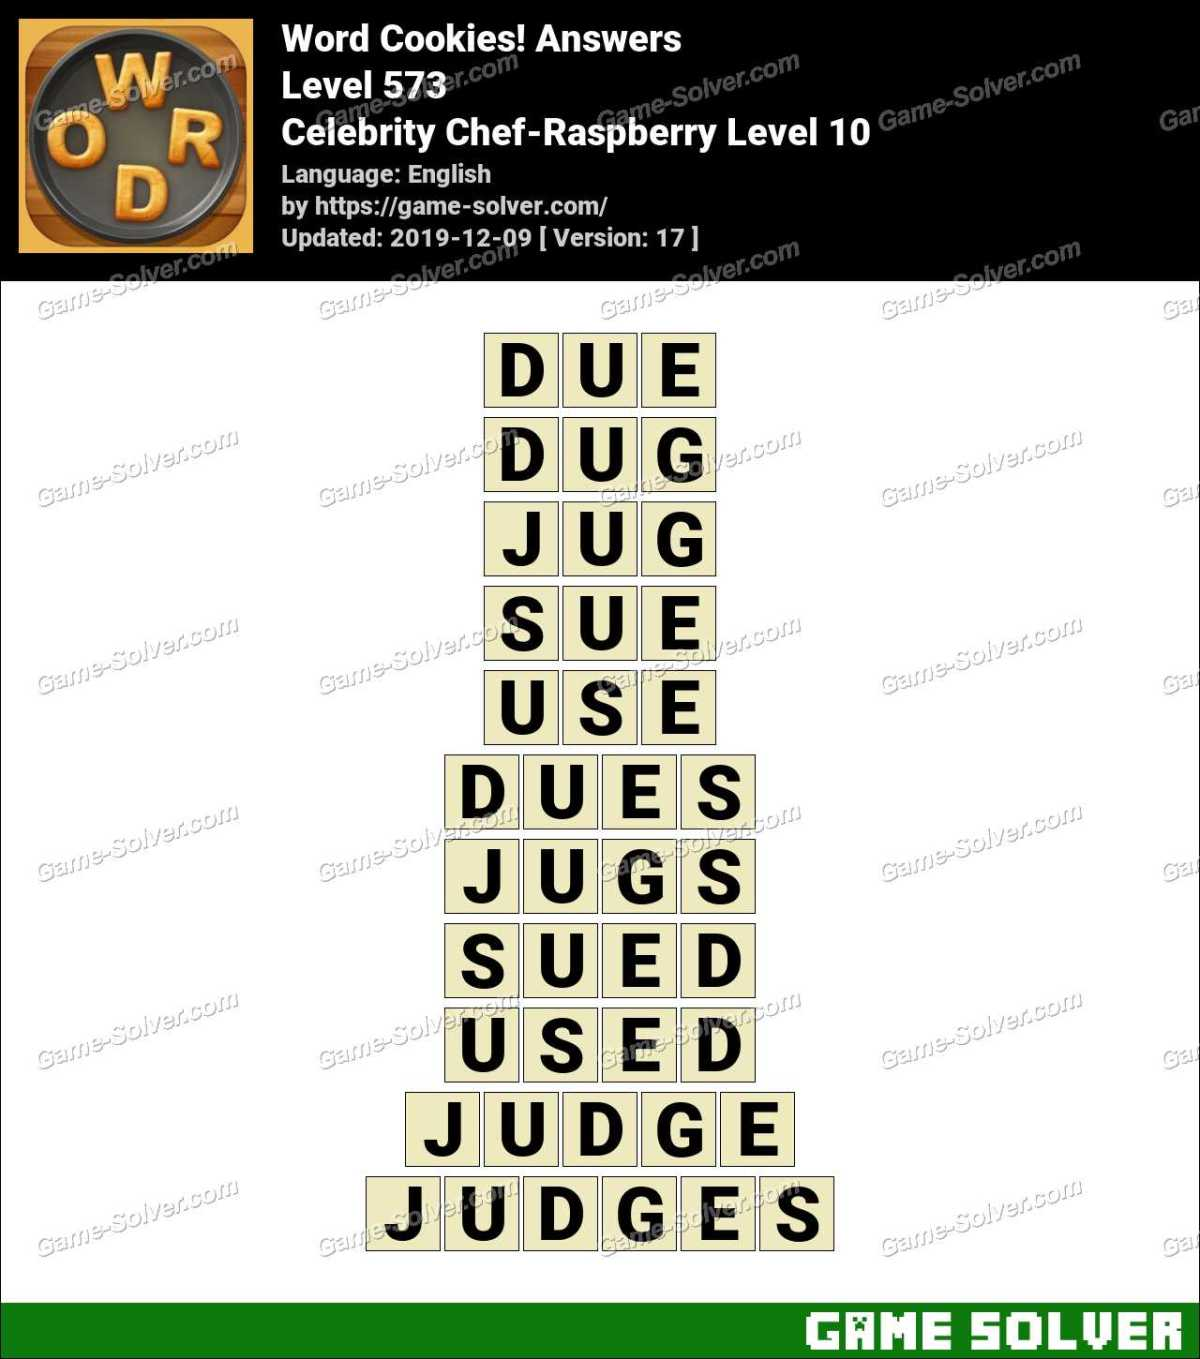 Word Cookies Celebrity Chef-Raspberry Level 10 Answers